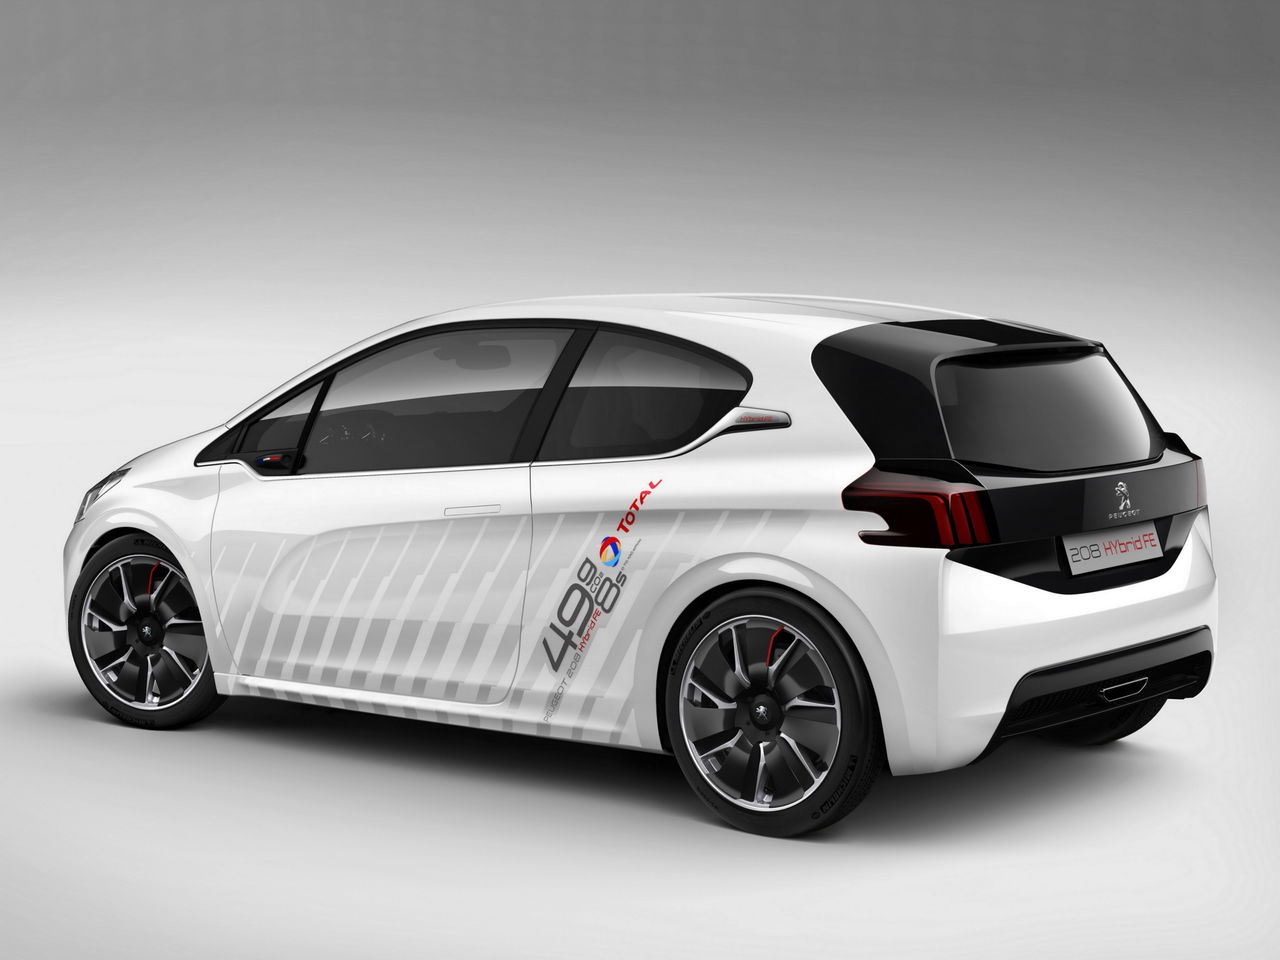 peugeot 208 hybrid fe le concept car fun efficient blog automobile. Black Bedroom Furniture Sets. Home Design Ideas